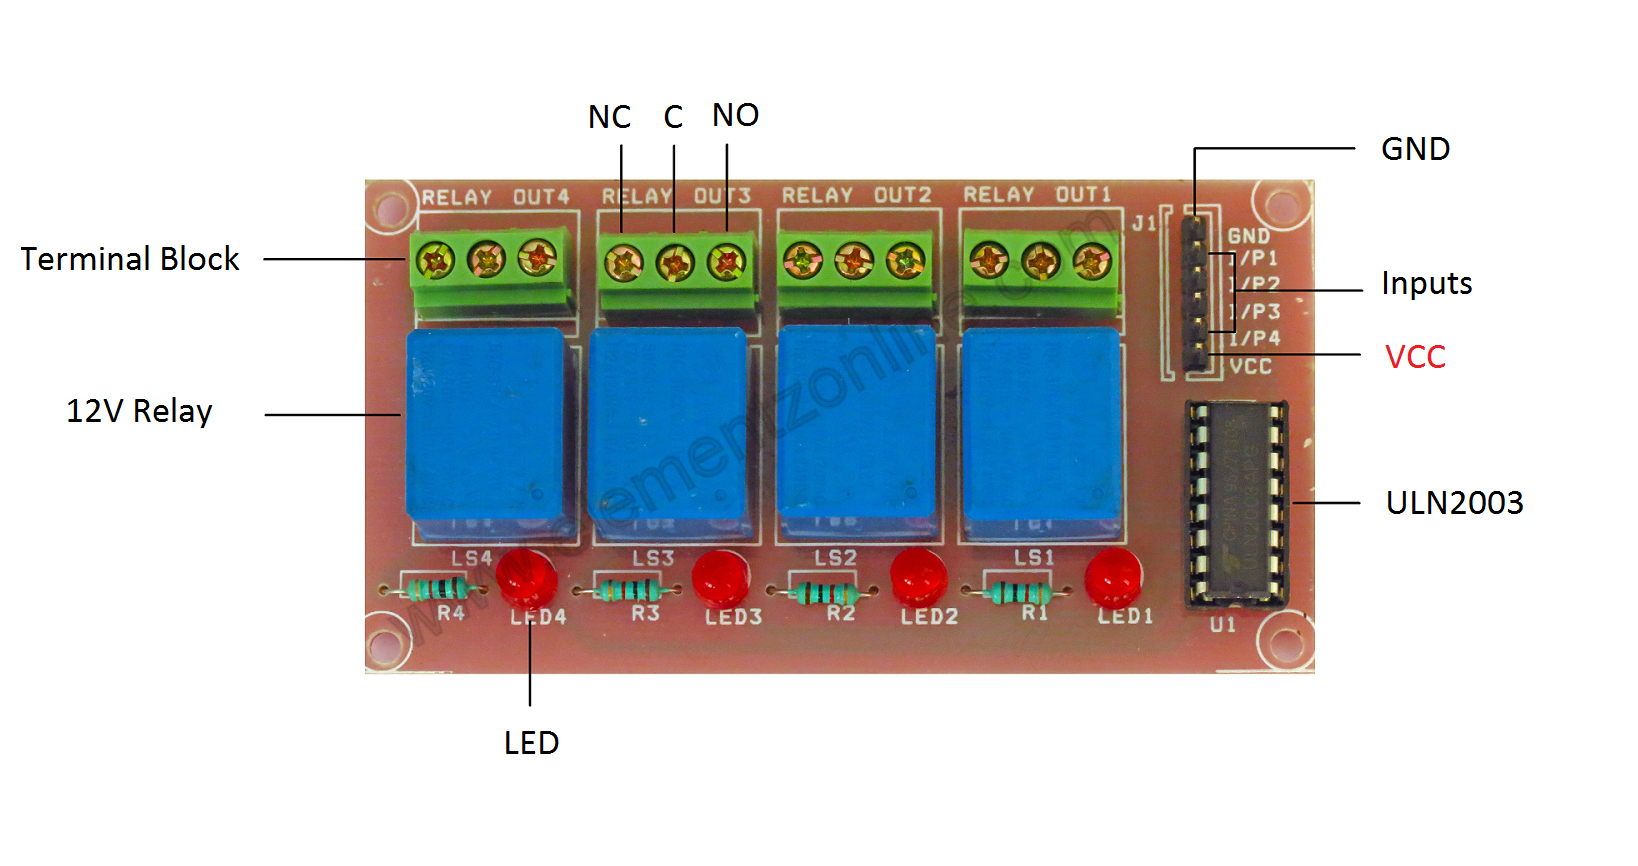 hight resolution of wiring a relay board 19 1 nuerasolar co u2022interfacing relay boards to arduino random codes